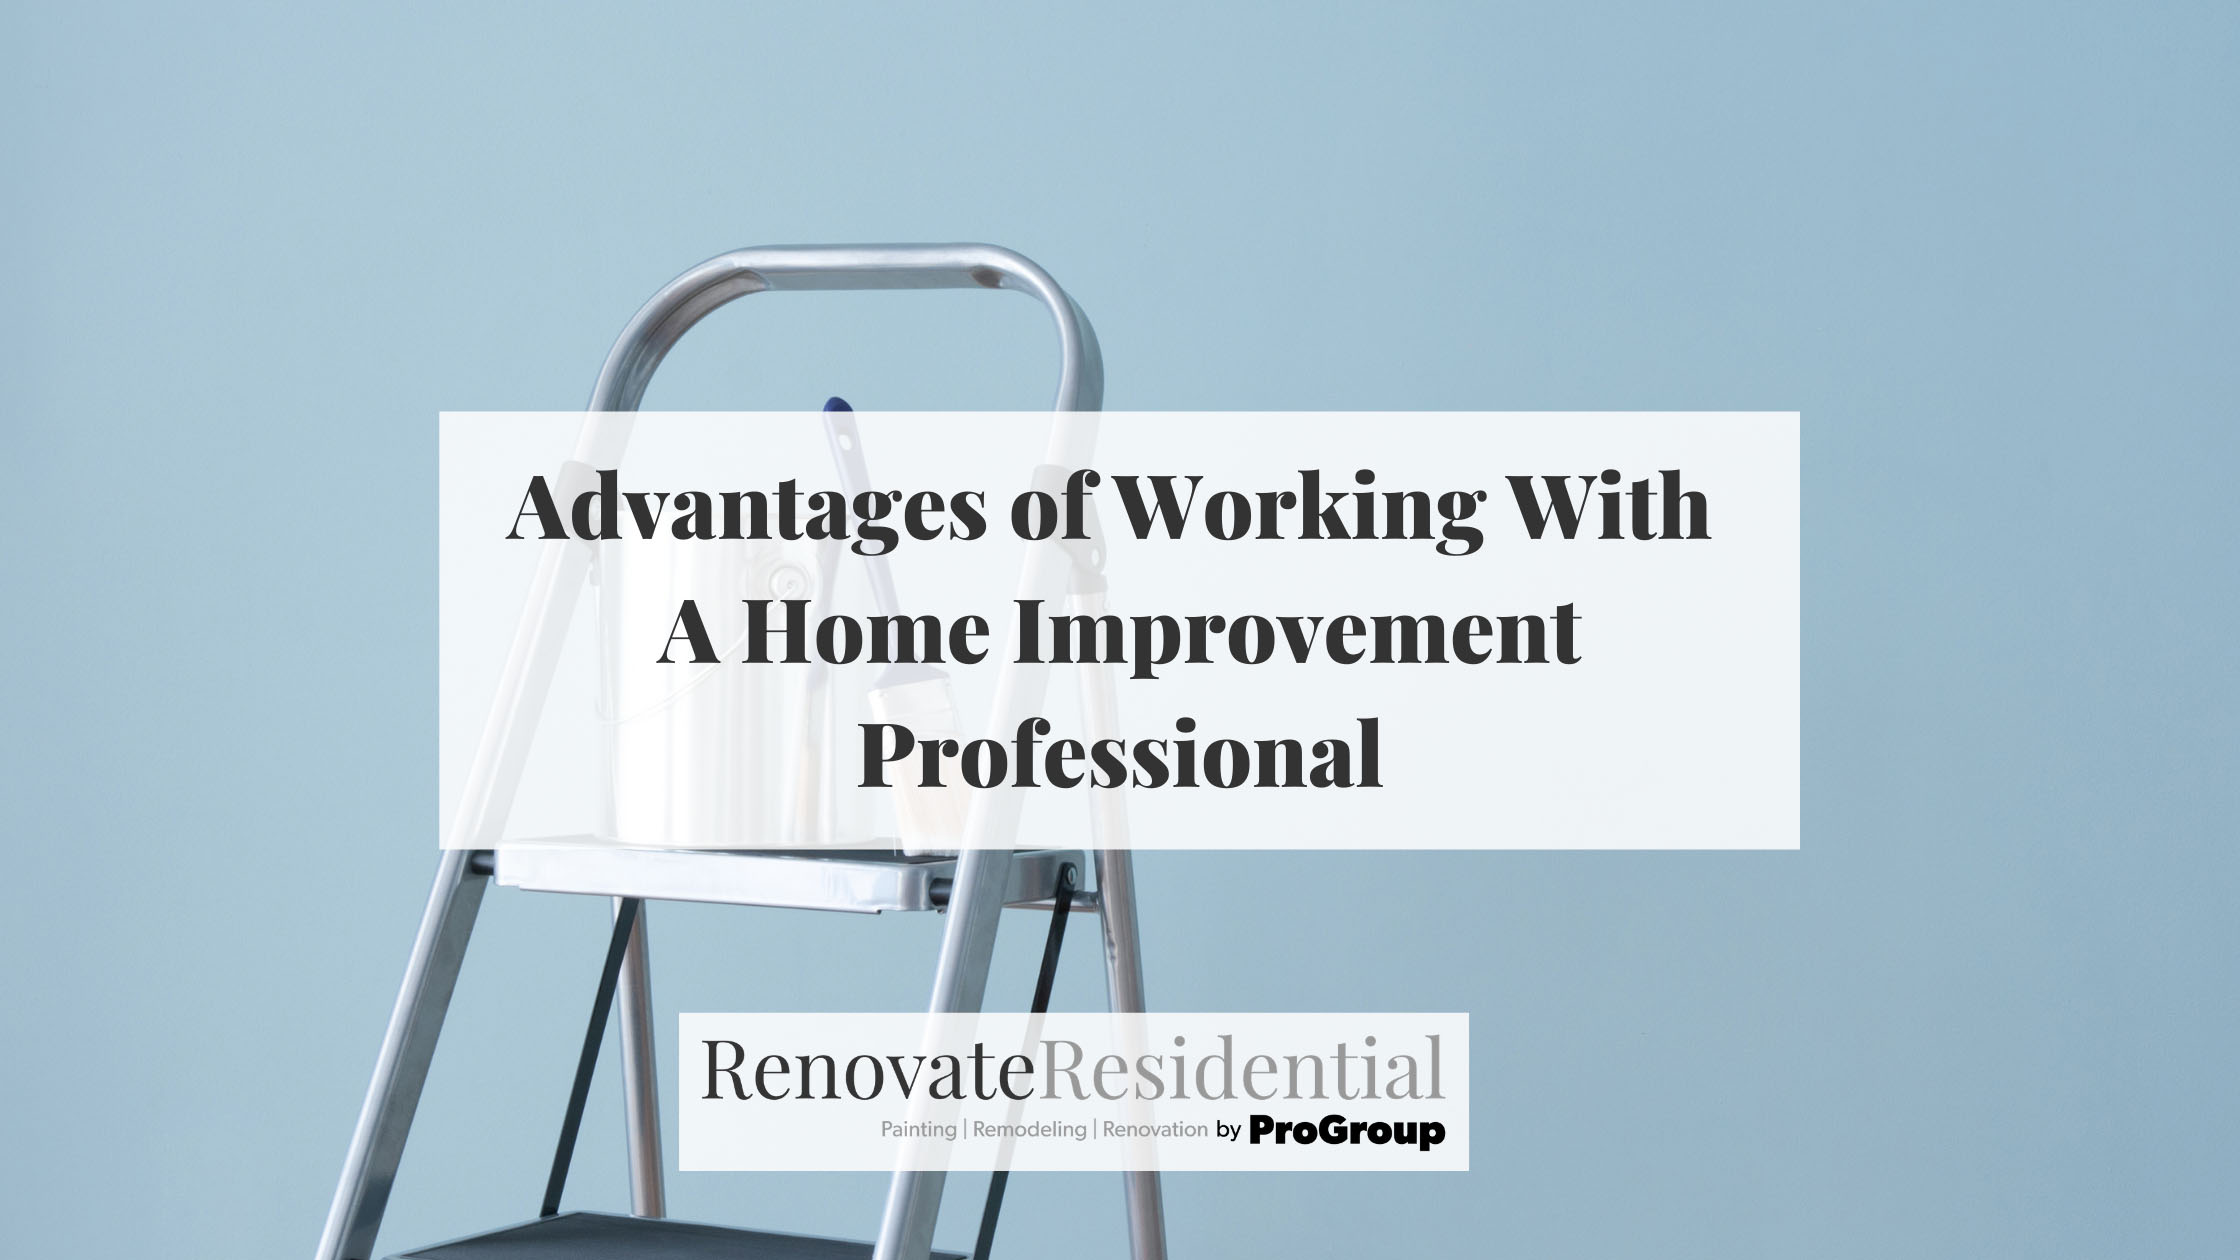 Advantages of Working With A Home Improvement Professional